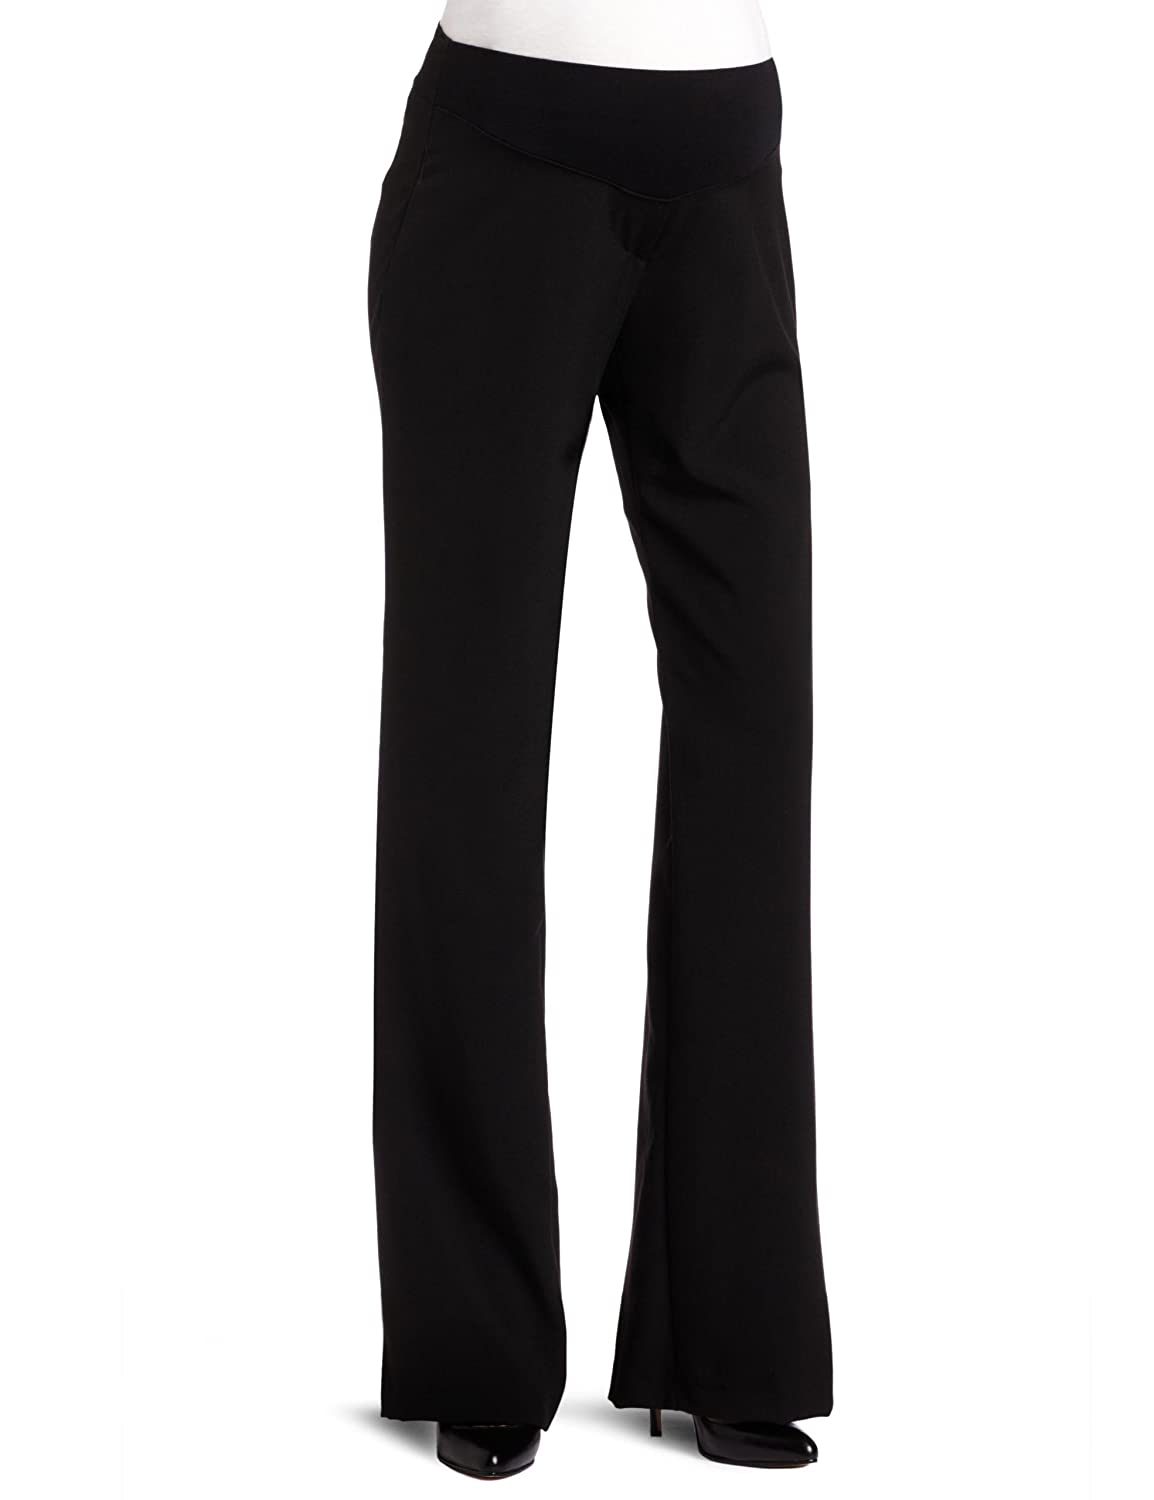 Three seasons maternity womens dress pant at amazon womens three seasons maternity womens dress pant at amazon womens clothing store fashion maternity pants ombrellifo Images